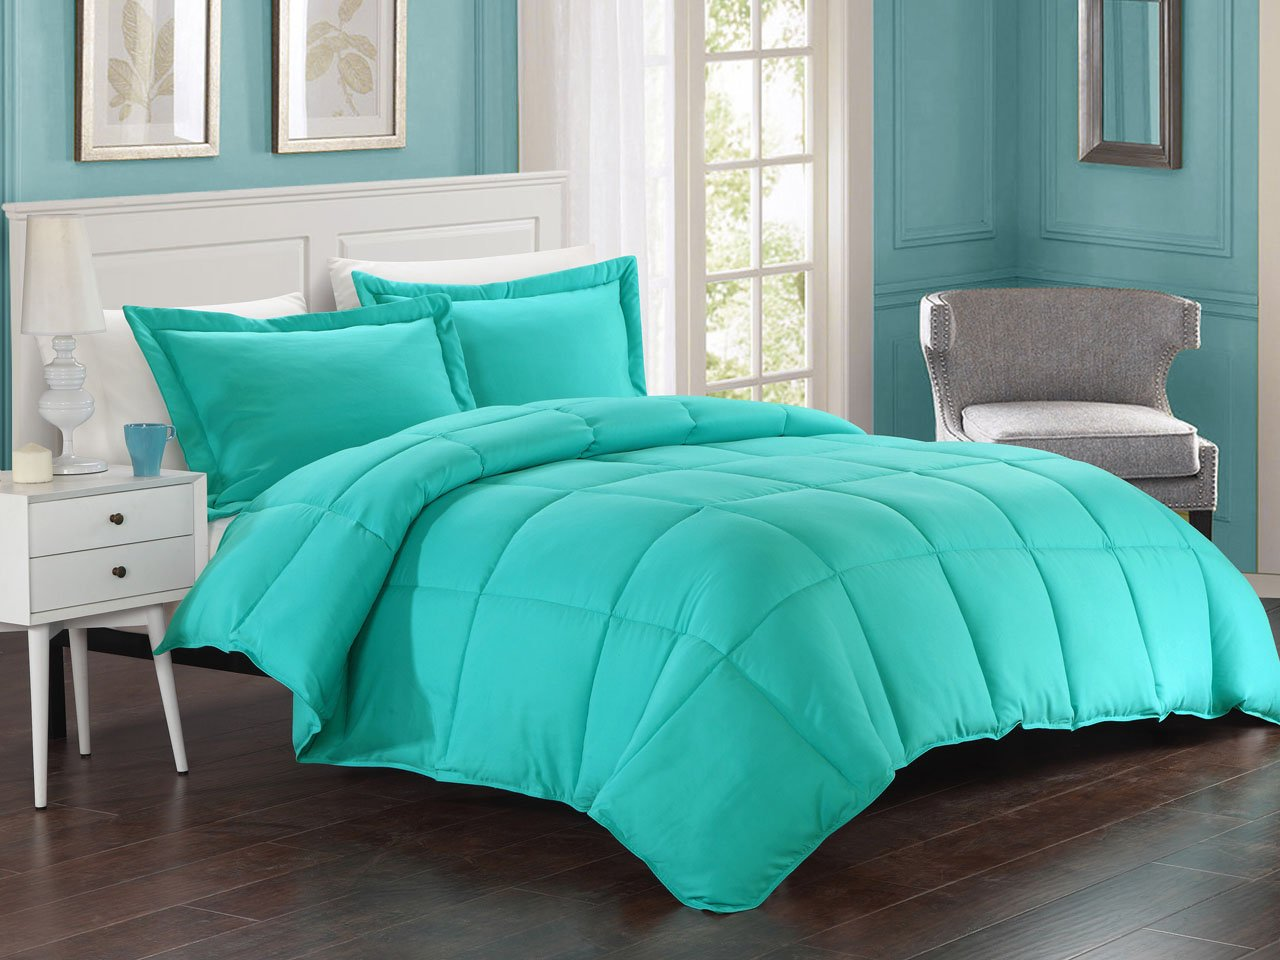 KingLinen® Turquoise Down Alternative Comforter Set King